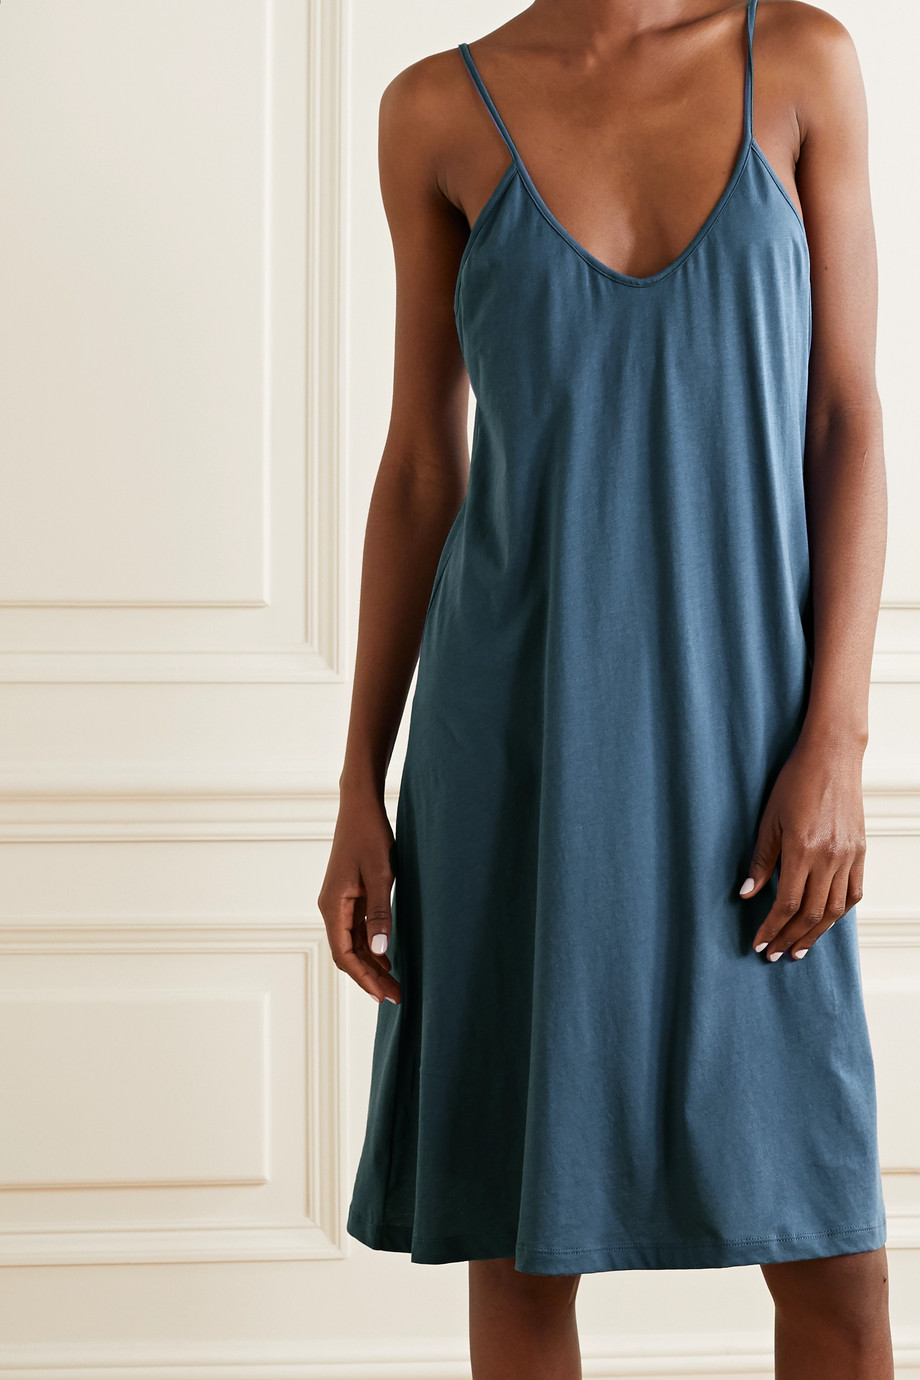 Skin Essentials Odelle Pima cotton-jersey nightdress